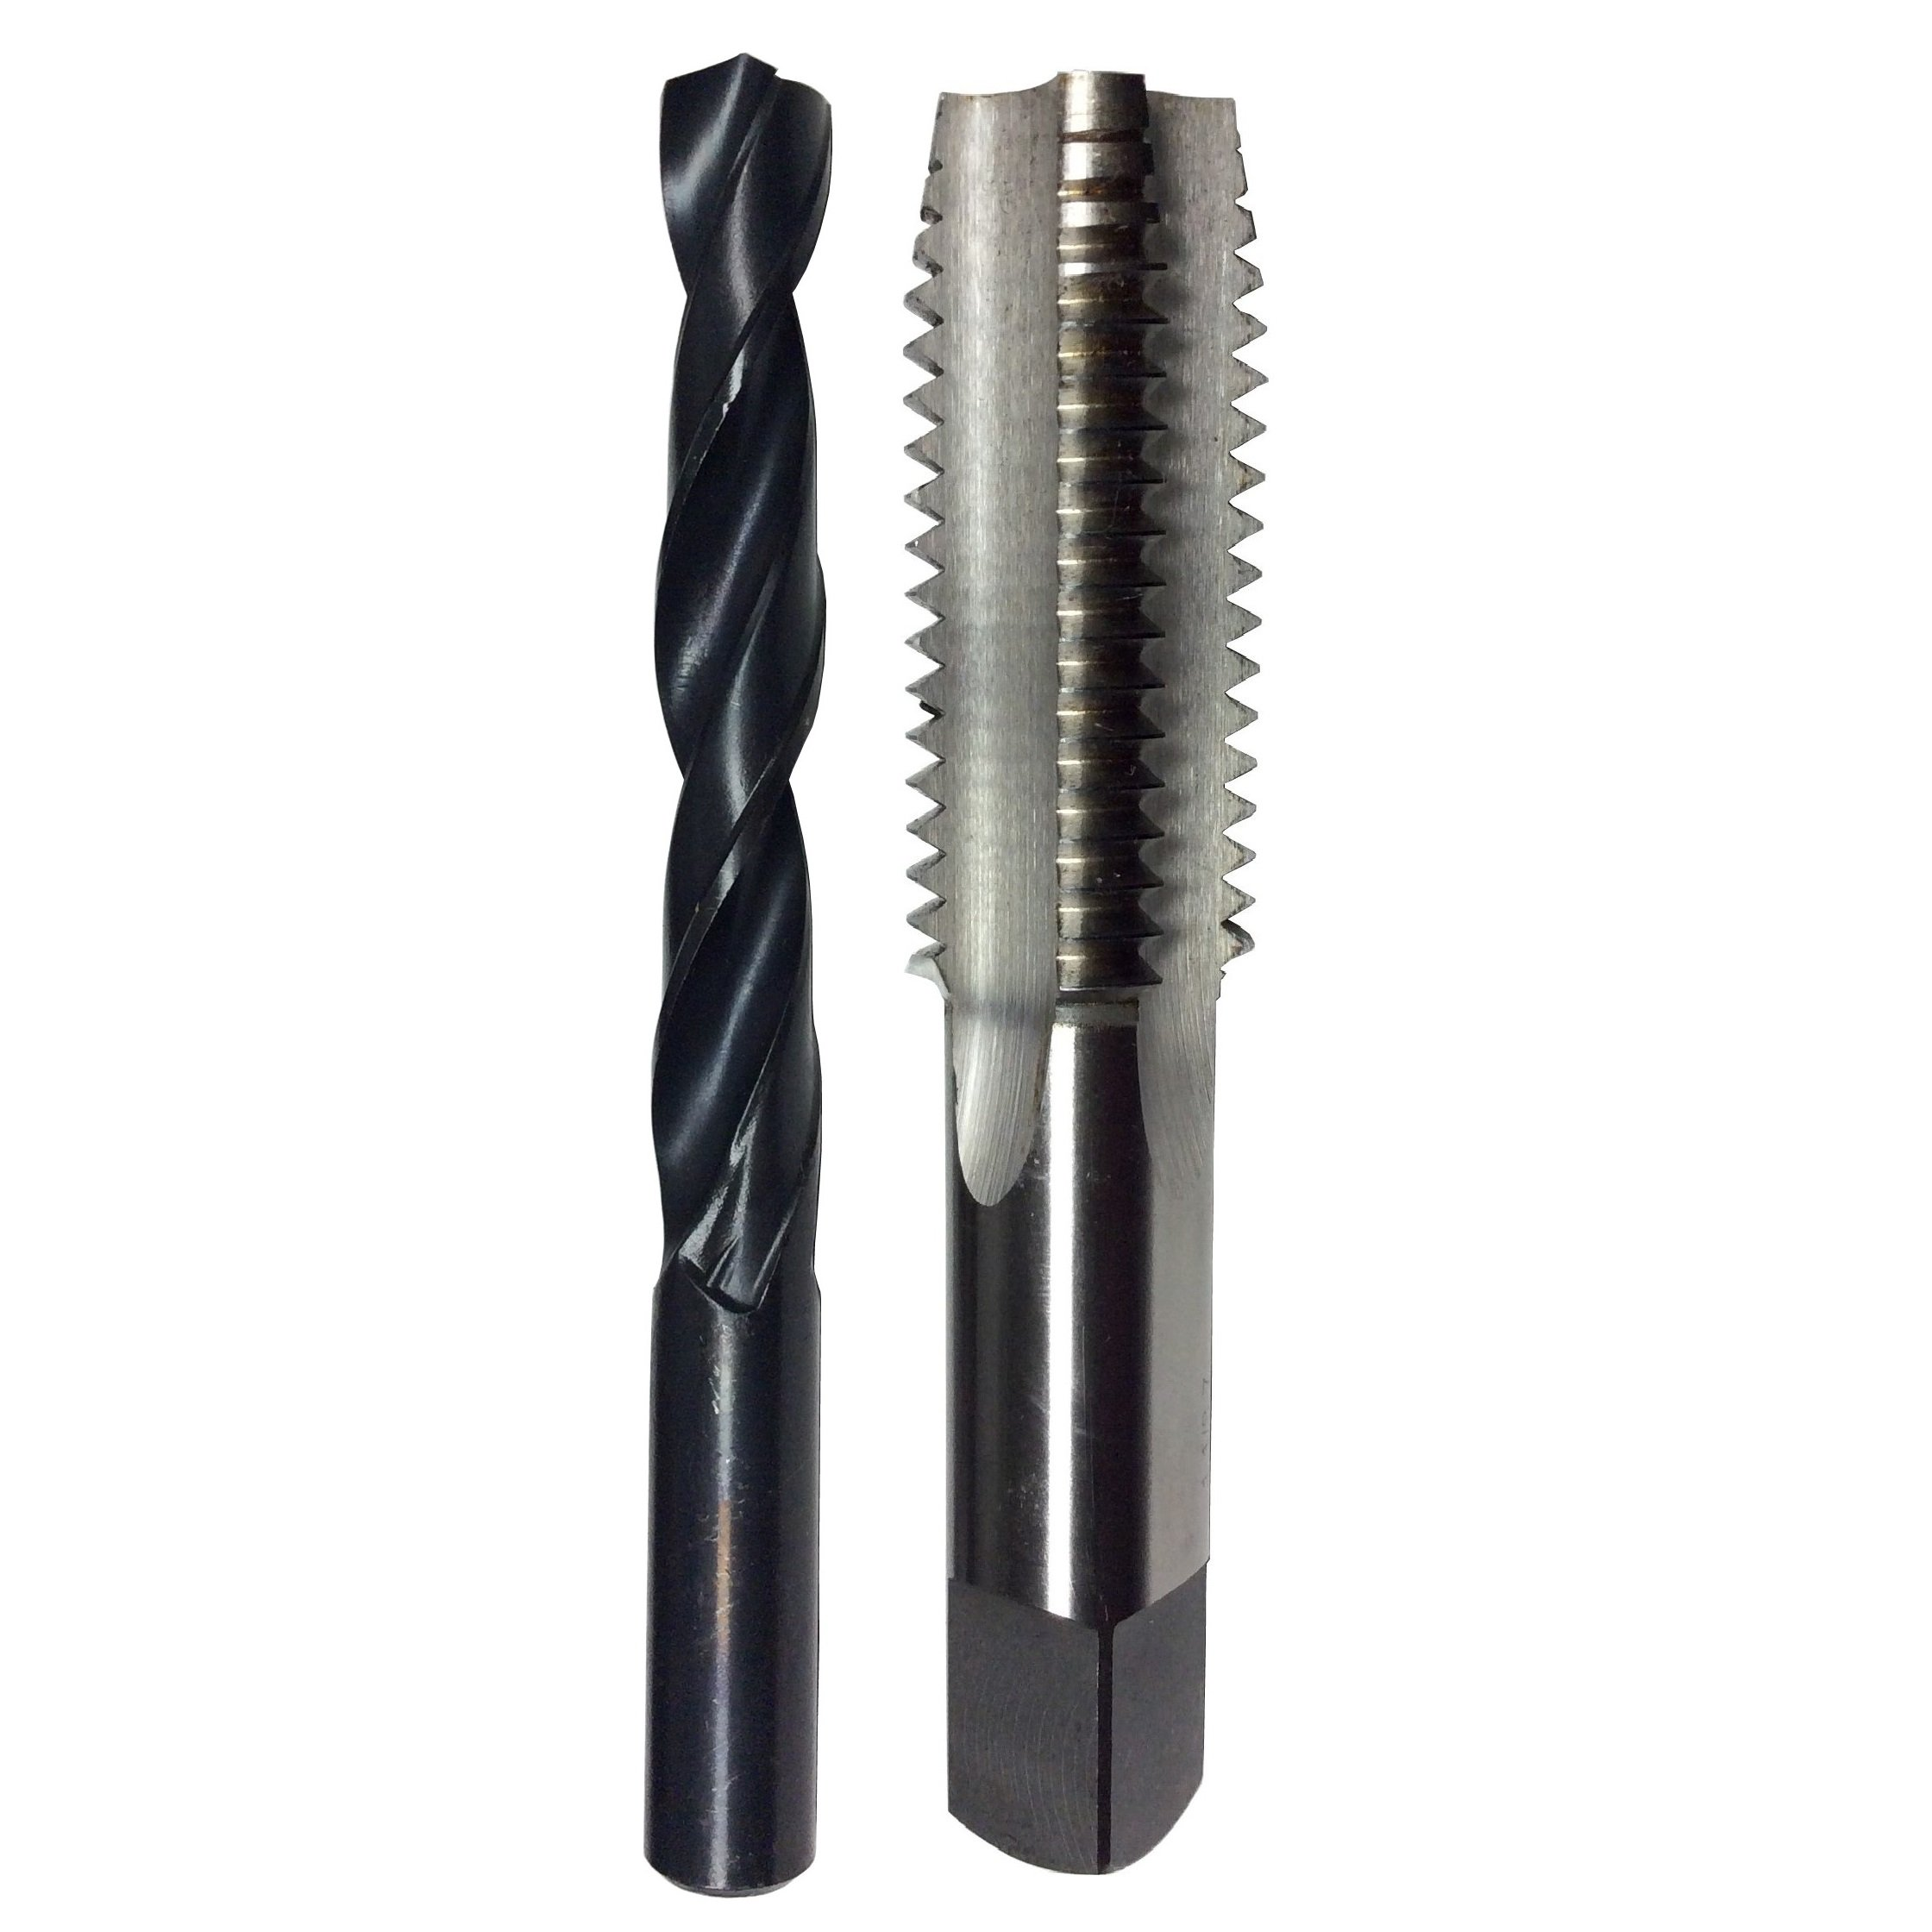 Drill America POUM14X2 Pouf Series M14 x 2 HSS Plug Tap and 12.00mm HSS Drill Bit in Plastic Case, Plug Chamfer, Right Hand Cut, High Speed Steel, Uncoated (Bright) Coating